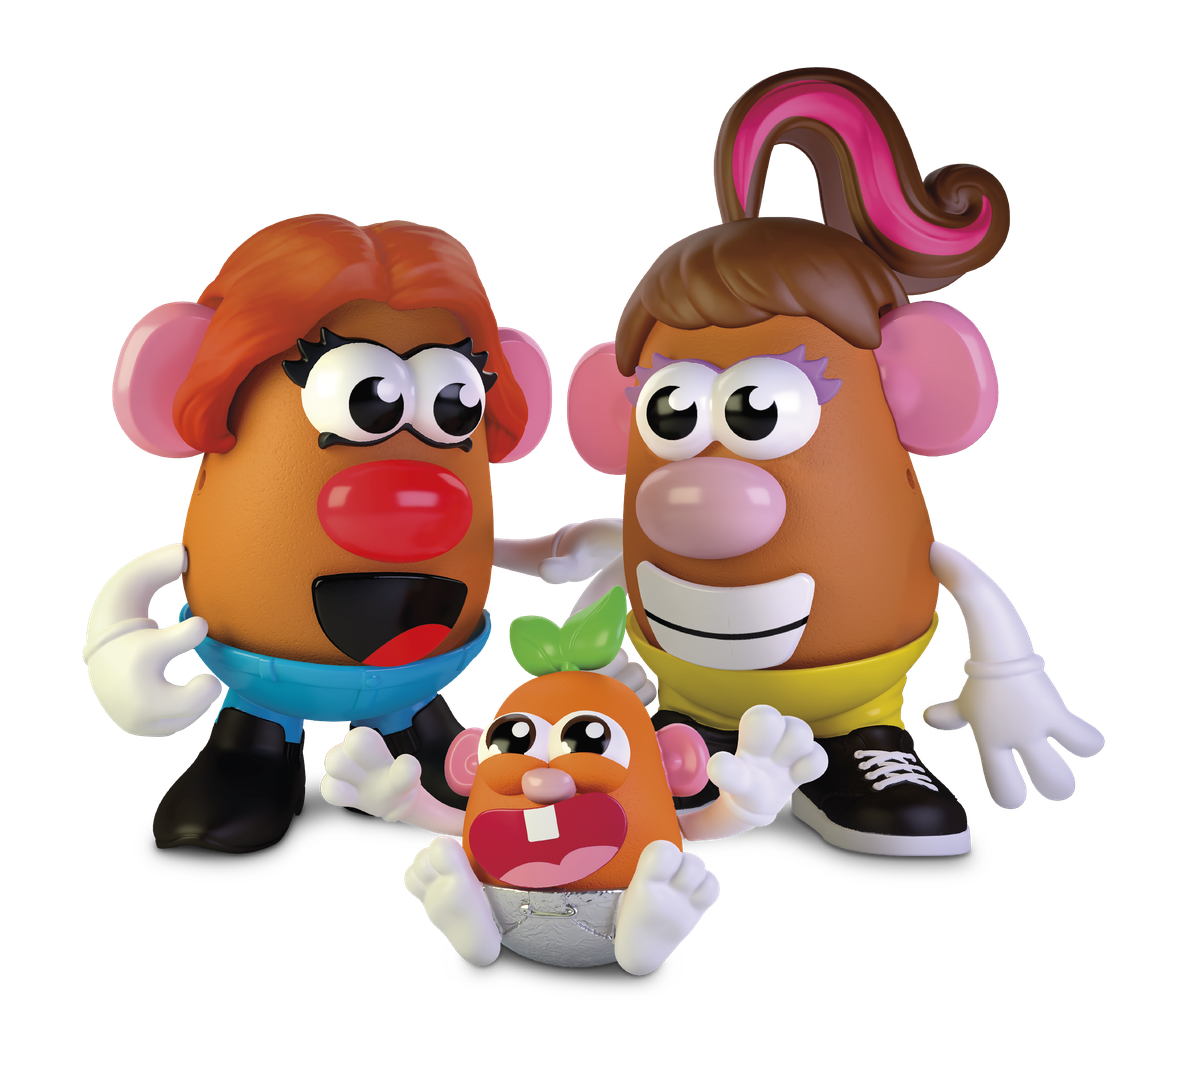 Create Your Own Potato Family , with two moms watching over a happy potato baby